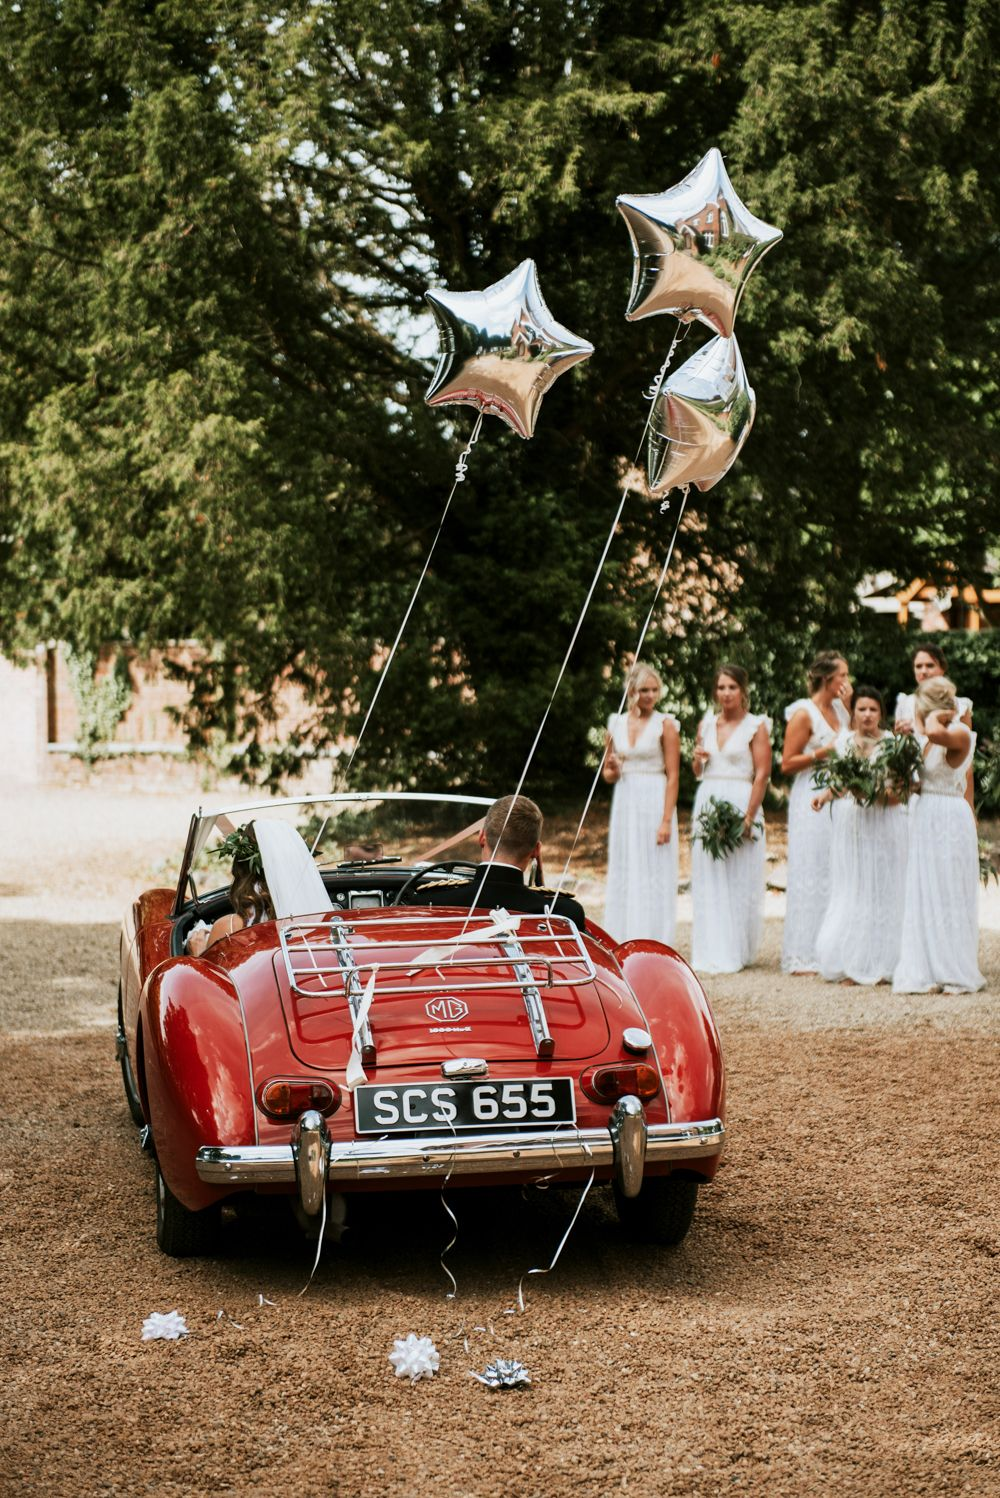 Best wedding car ideas